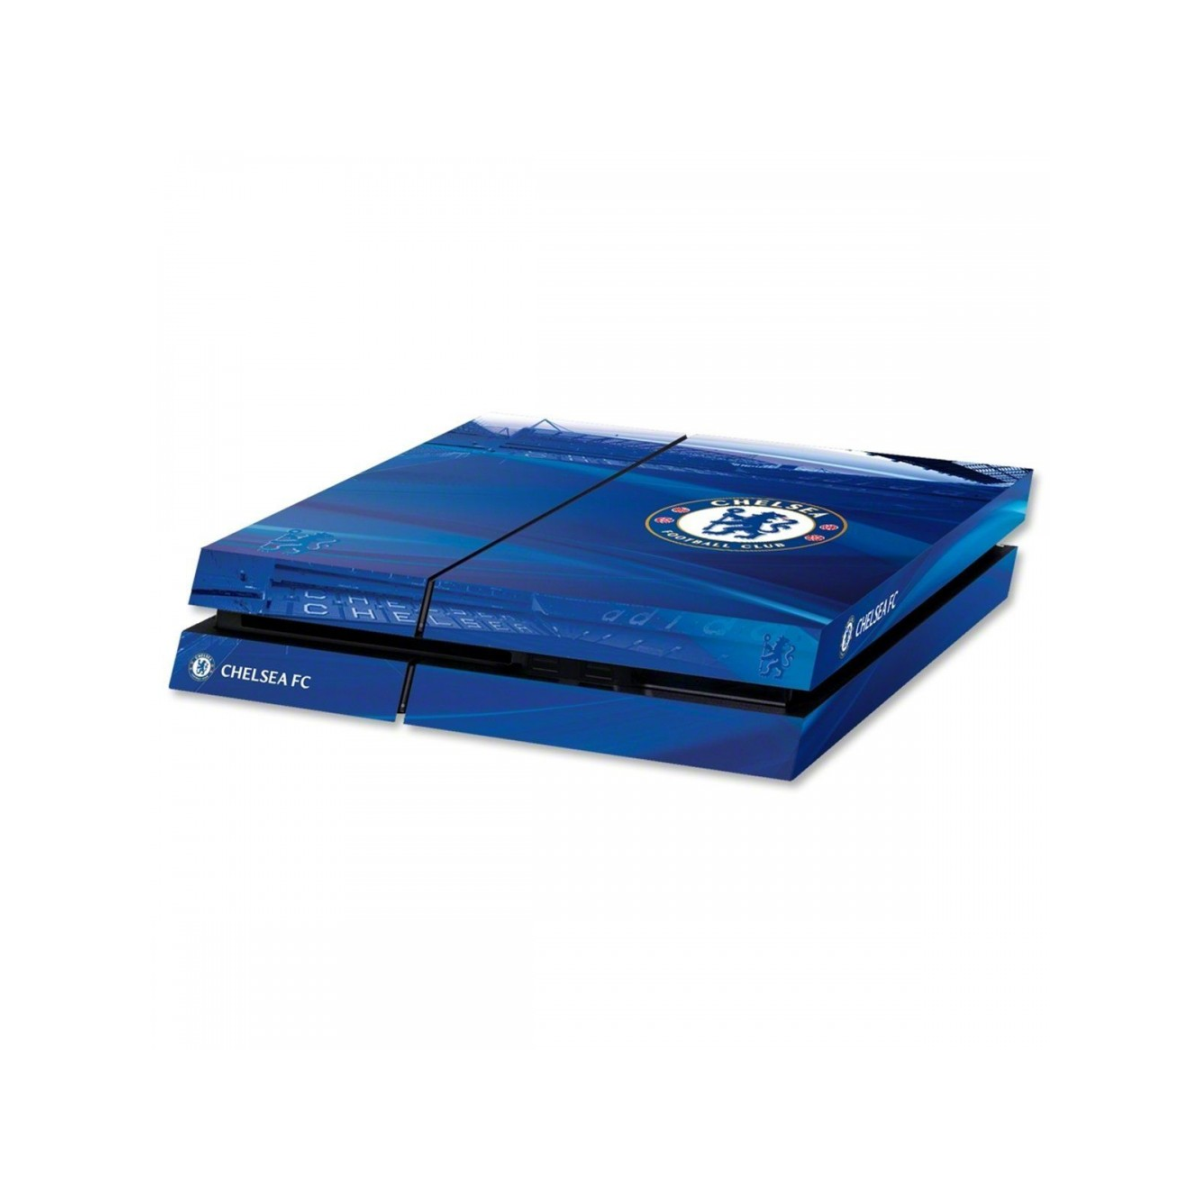 inToro Chelsea FC Skin PlayStation 4 Console